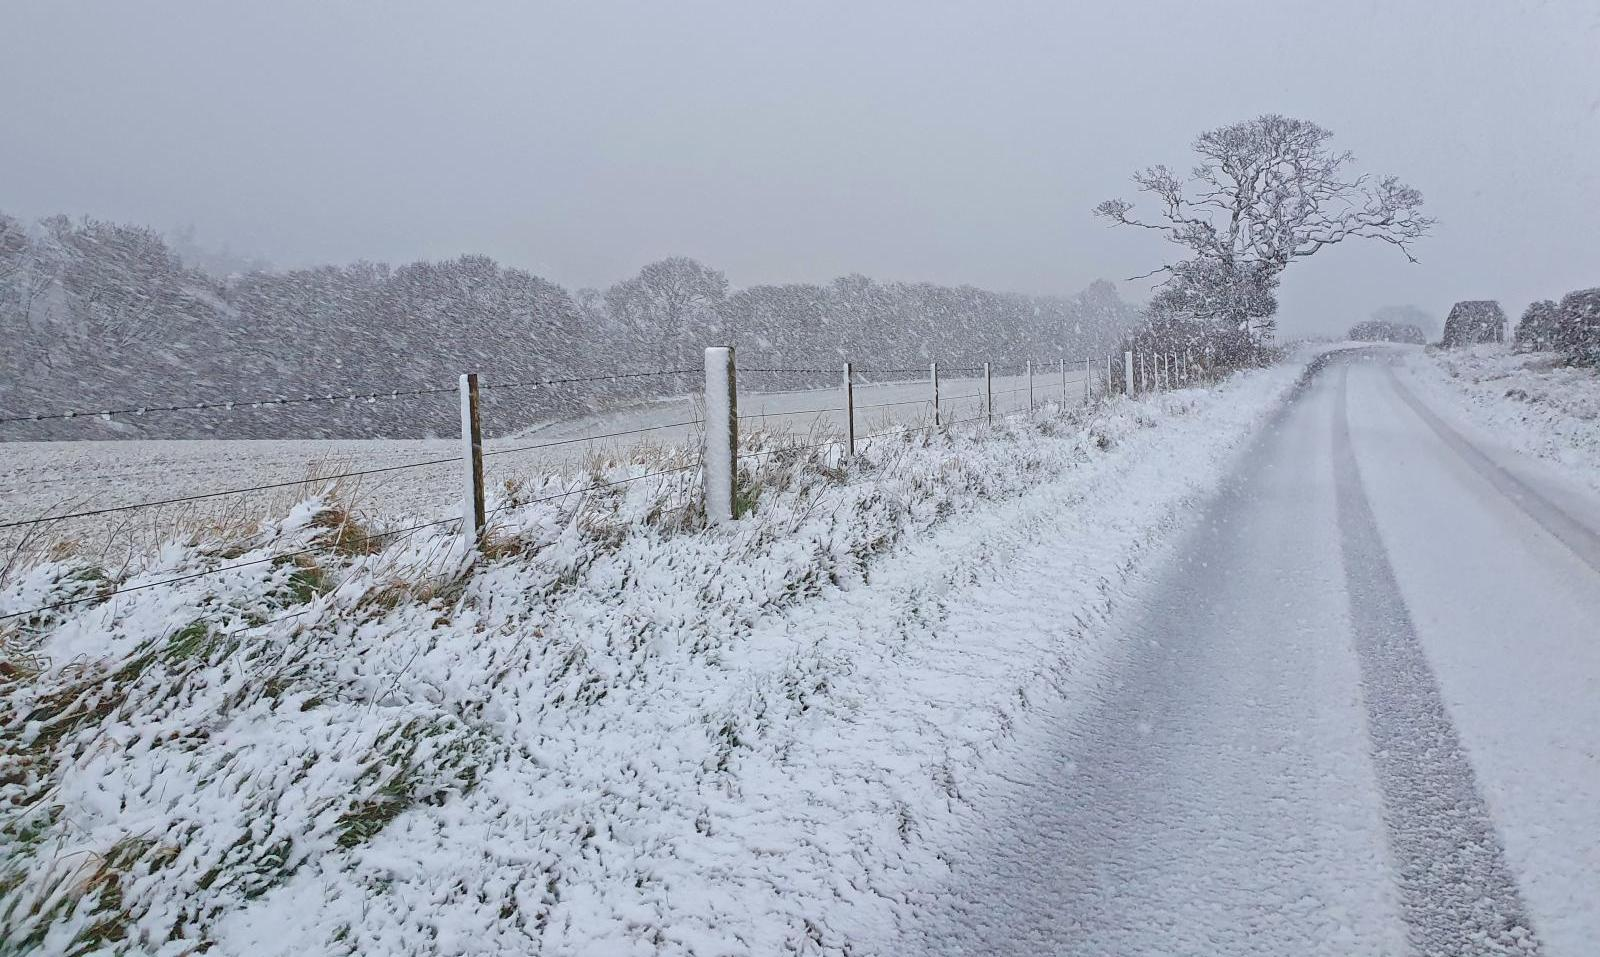 Wintry end to the week for the UK, with snow in places, particularly in the north